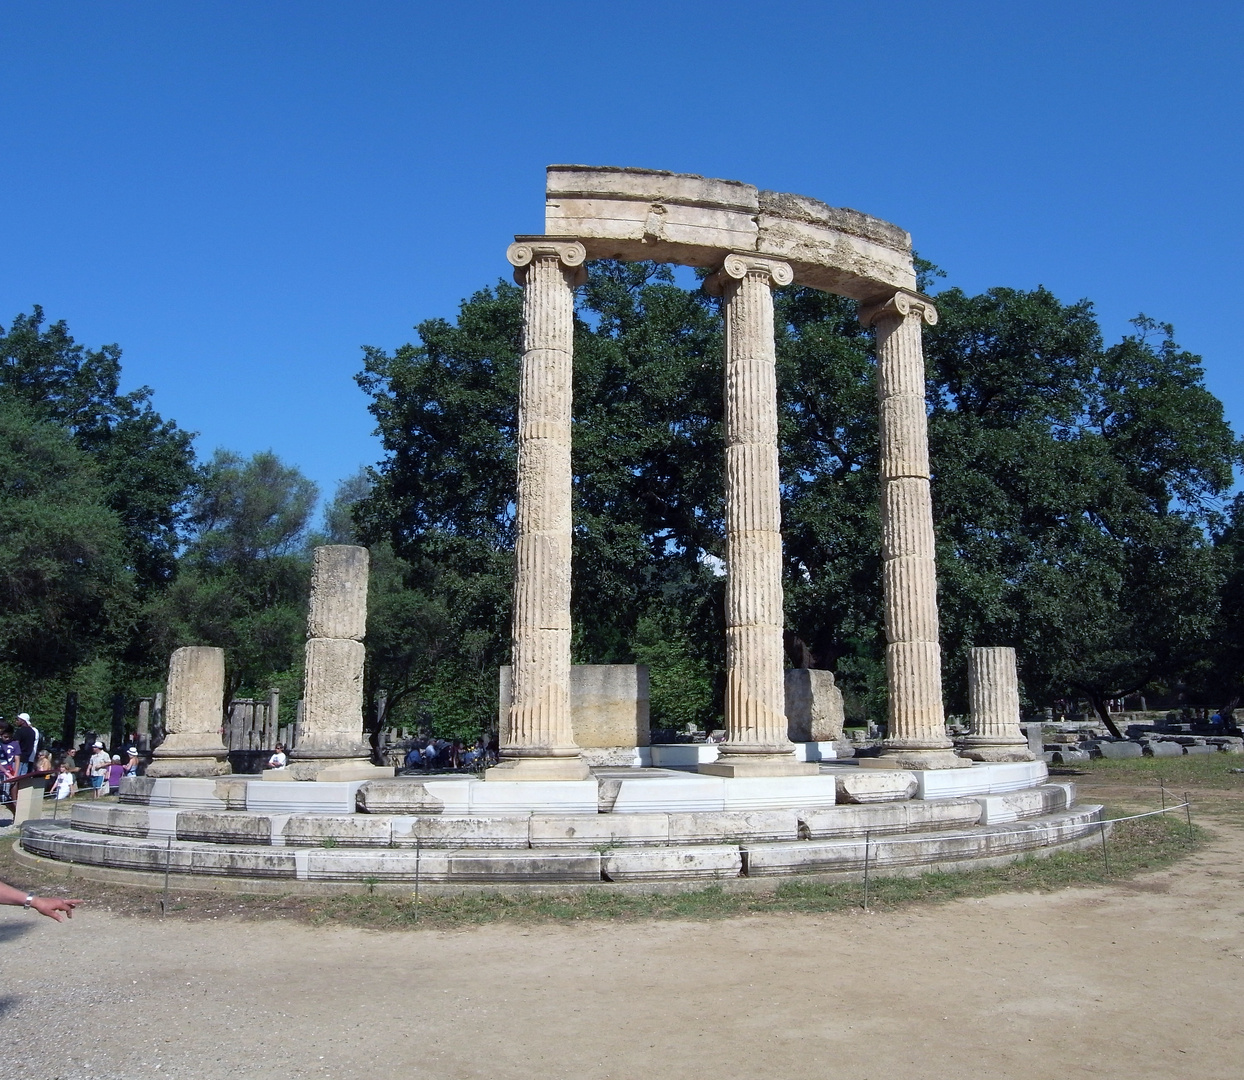 Olympia 2 (Griechenland)